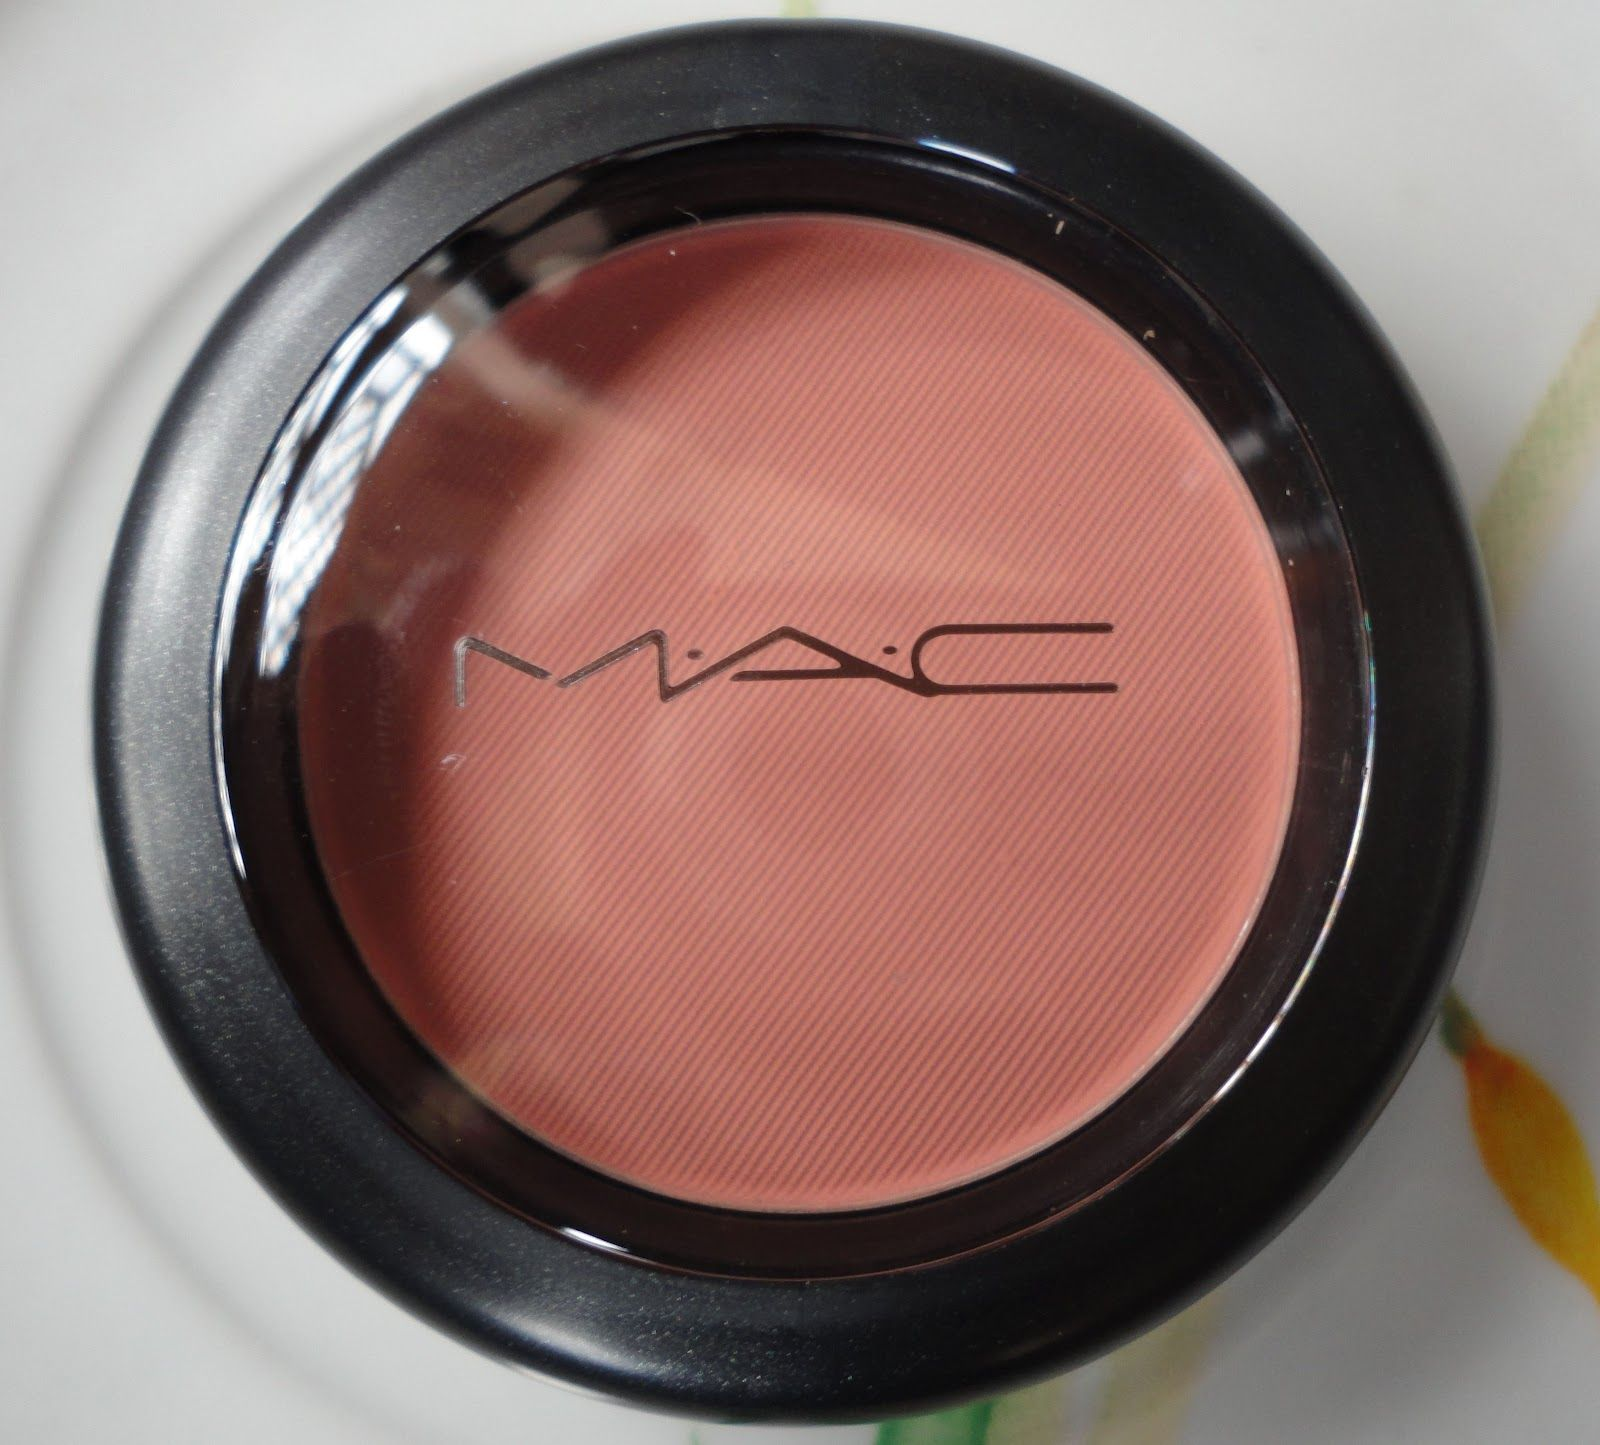 Connu MAC Melba Blush all matte rosey peach looks good on everyone  ZV99